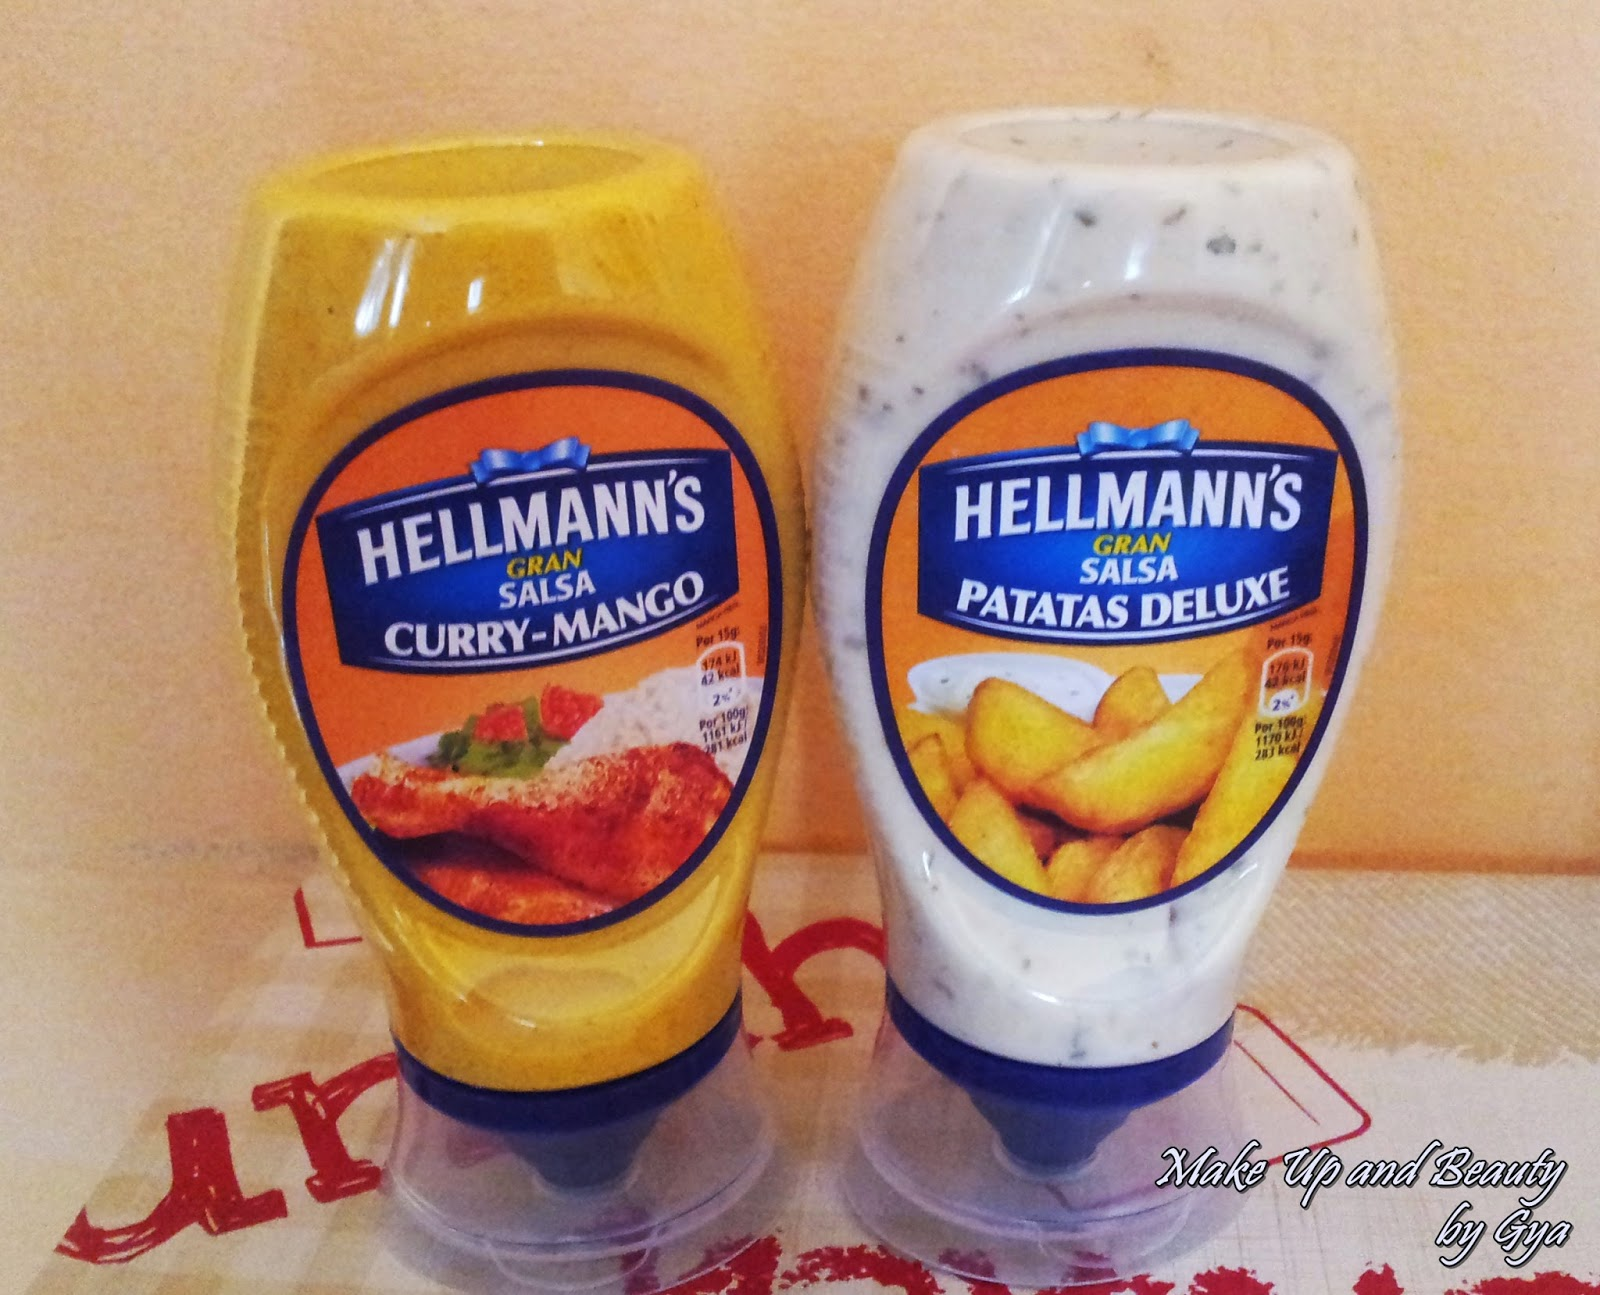 Salsa Hellmann´s Curry-Mango y Patatas Deluxe